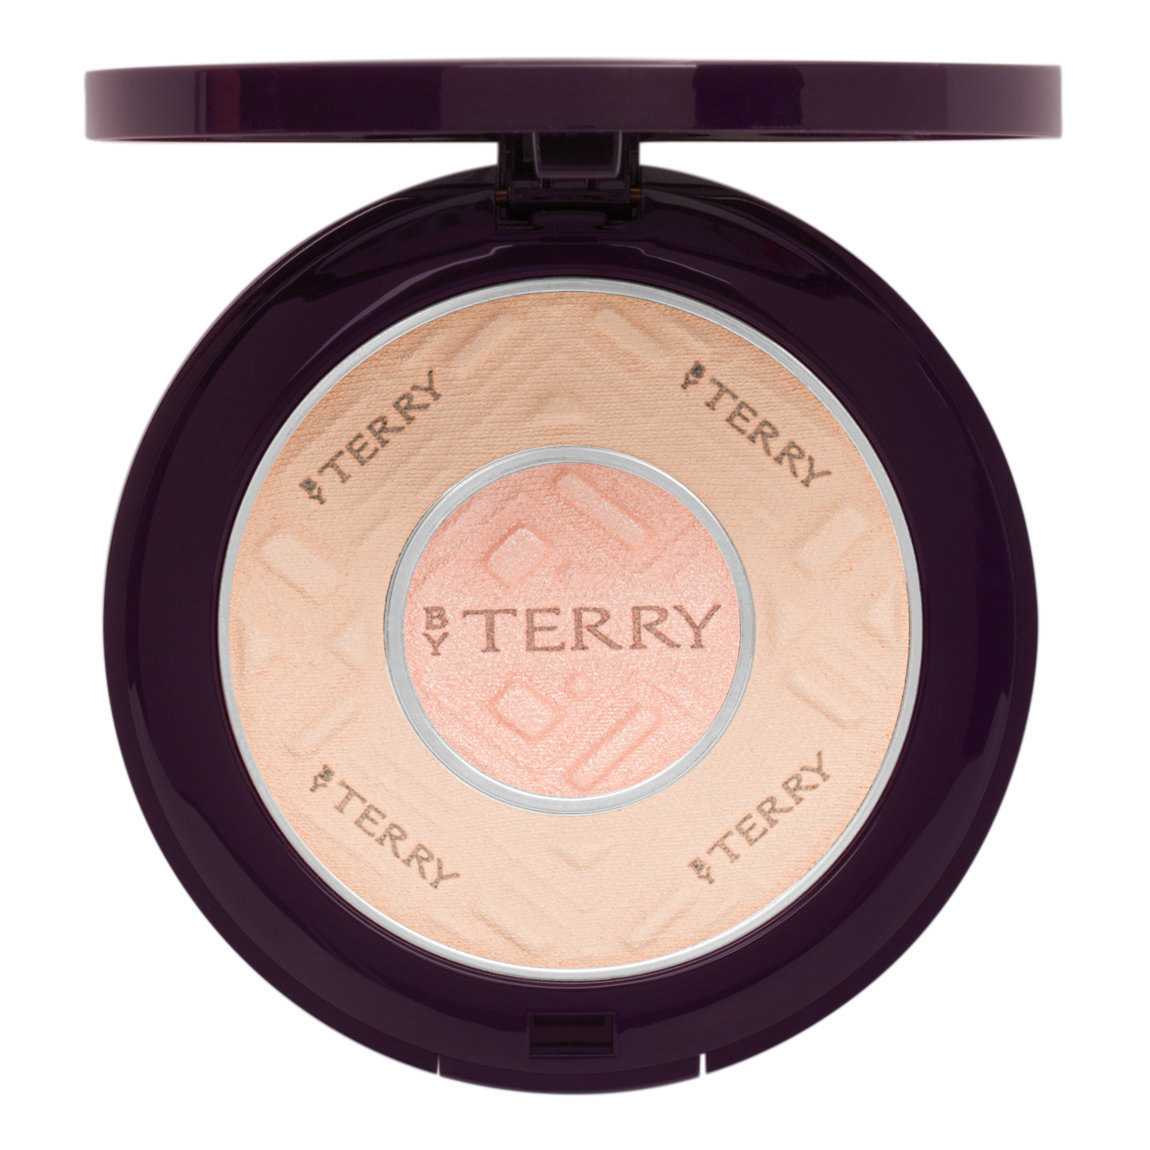 BY TERRY Compact-Expert Dual Powder 1 Ivory Fair product smear.